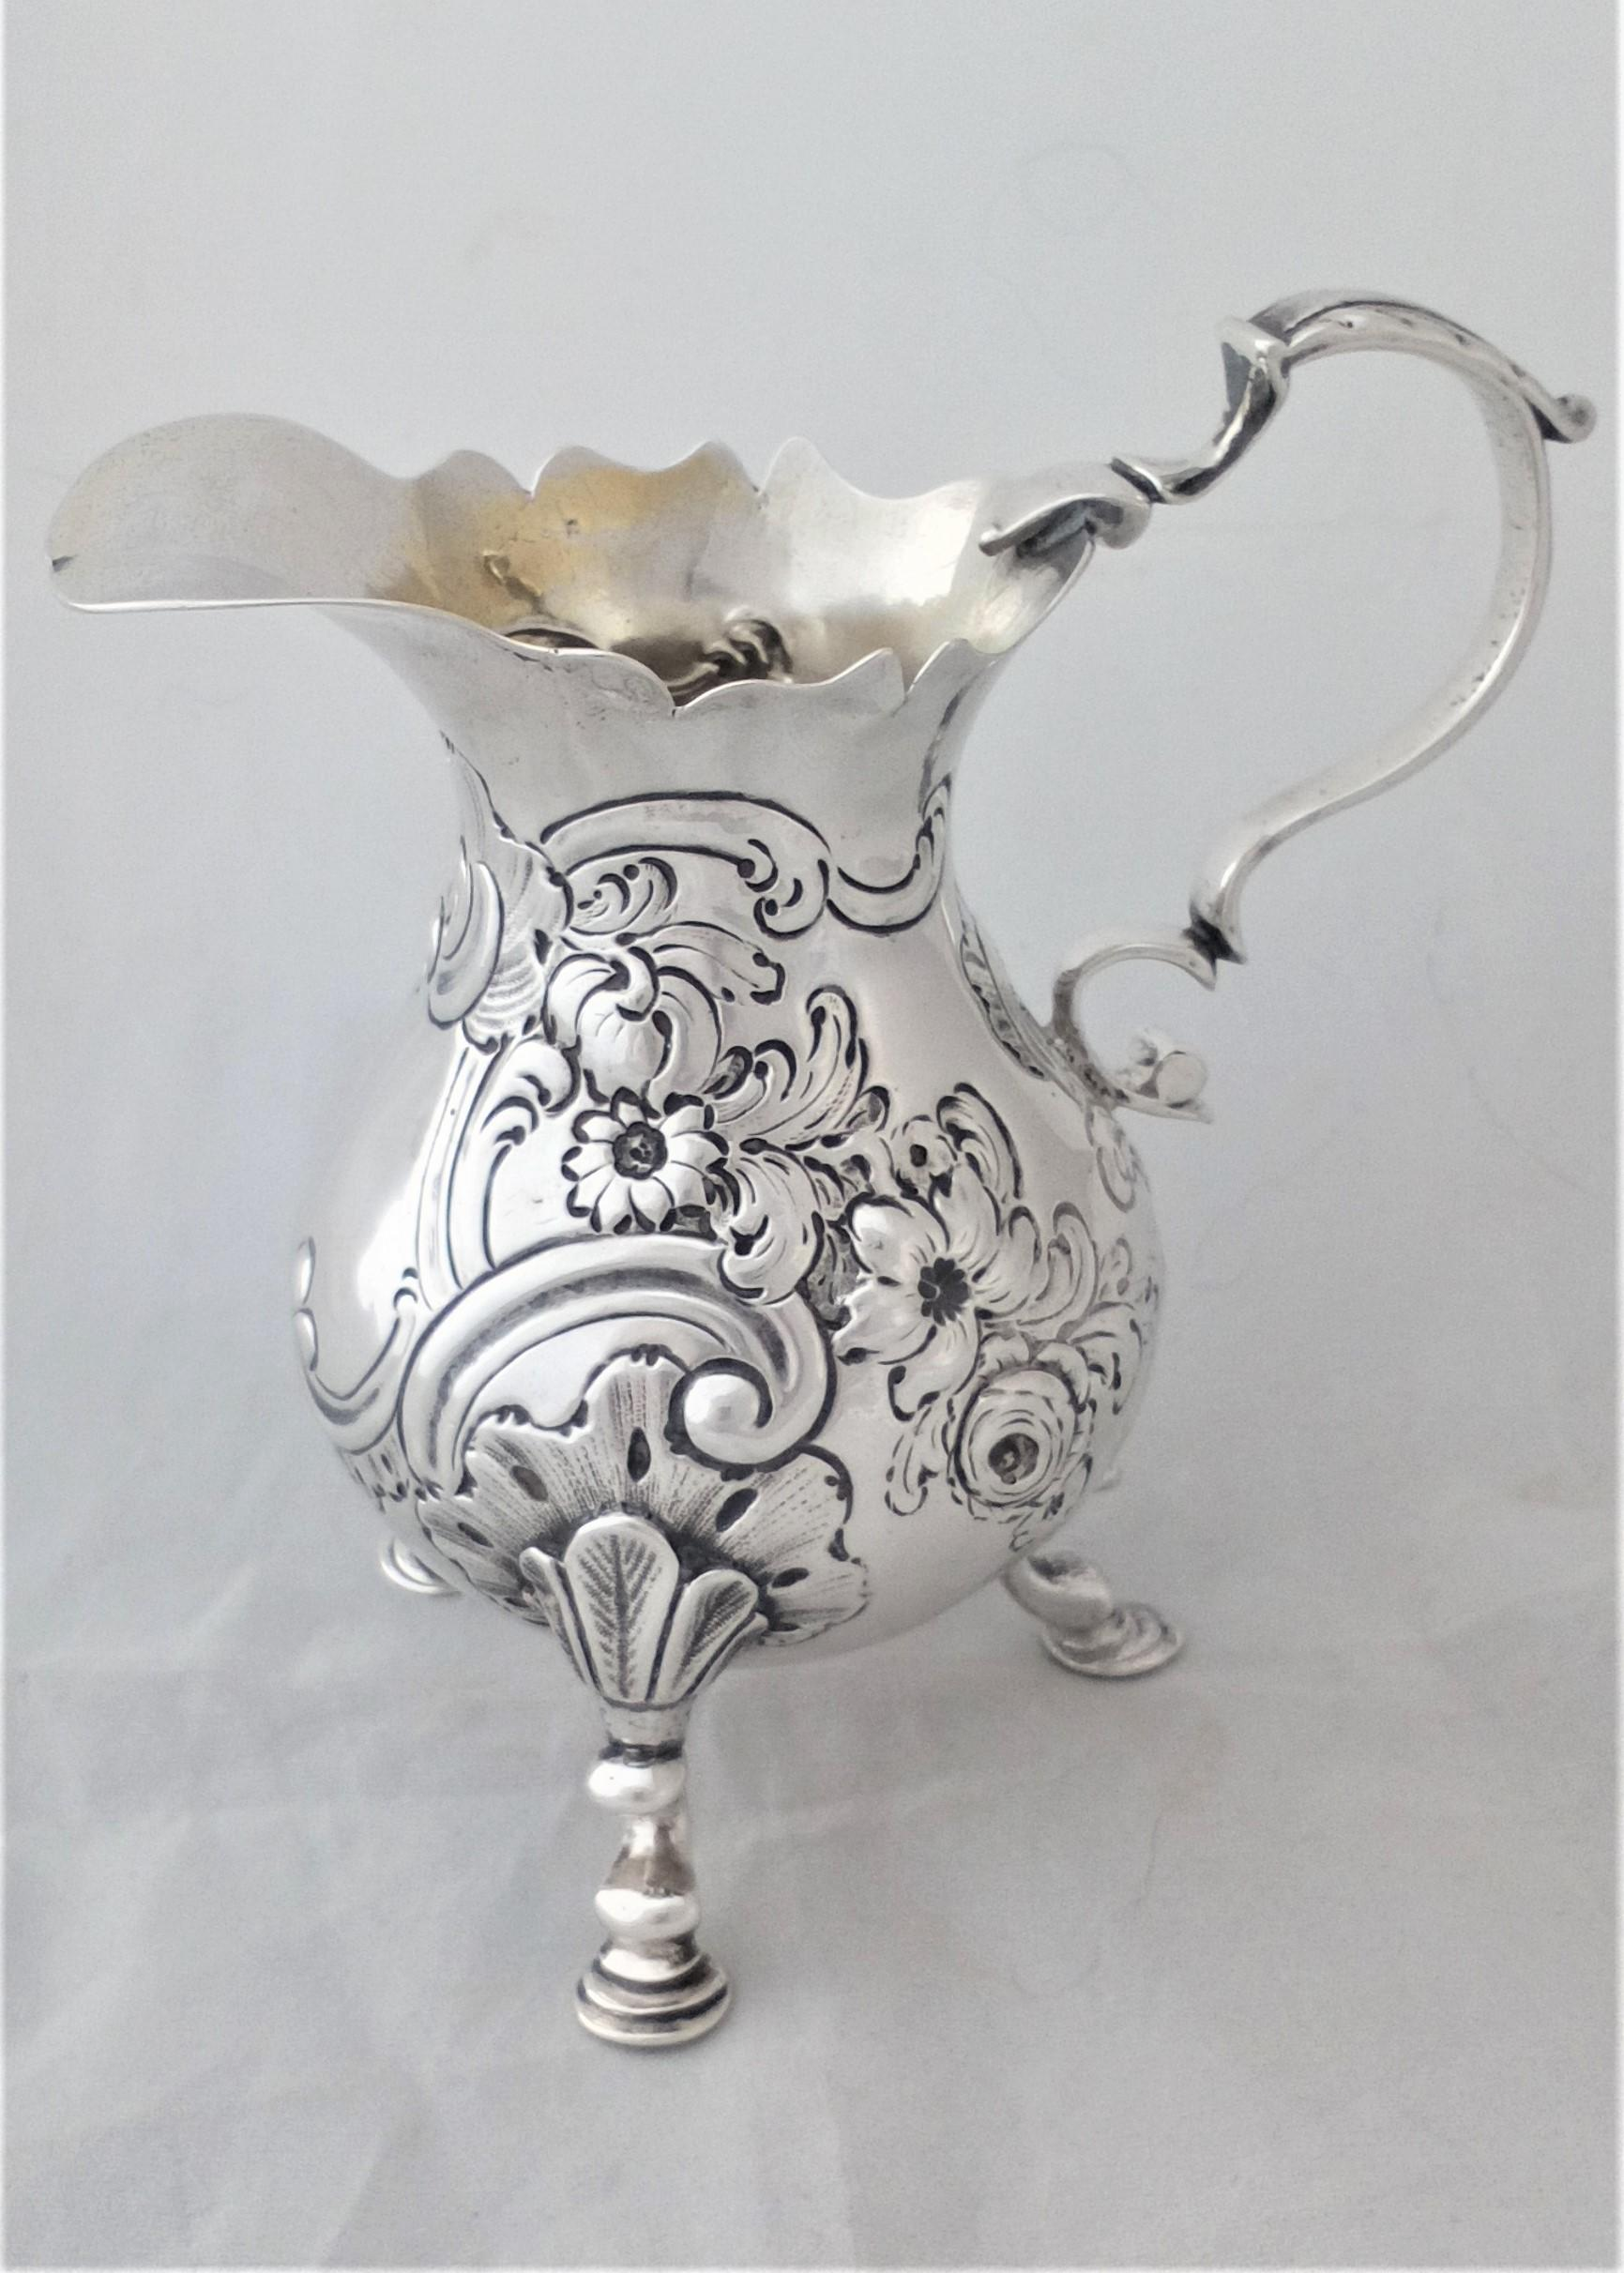 Antique George II Silver Cream Jug Pear Shaped with chased and repousse decoration Hallmarked Sterling silver London 1753 Louis Hamon 101 grammes